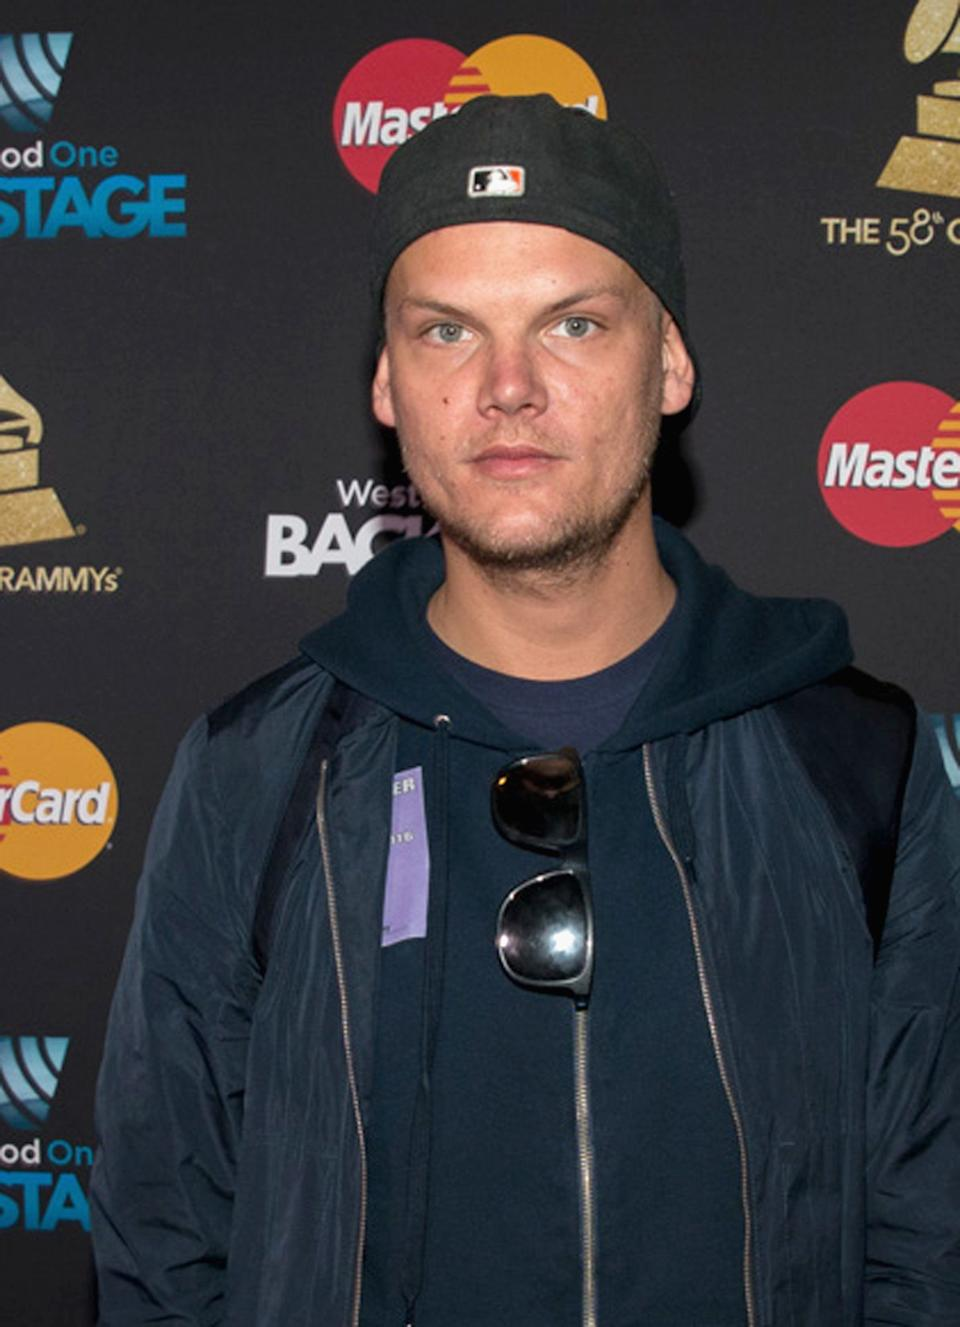 <strong>Avicii</strong><br /><strong>DJ<i>(b. 1989)</i></strong><br /><br />Avicii's death, at the age of 28, stunned the music world and stars including Nile Rodgers paid tribute.